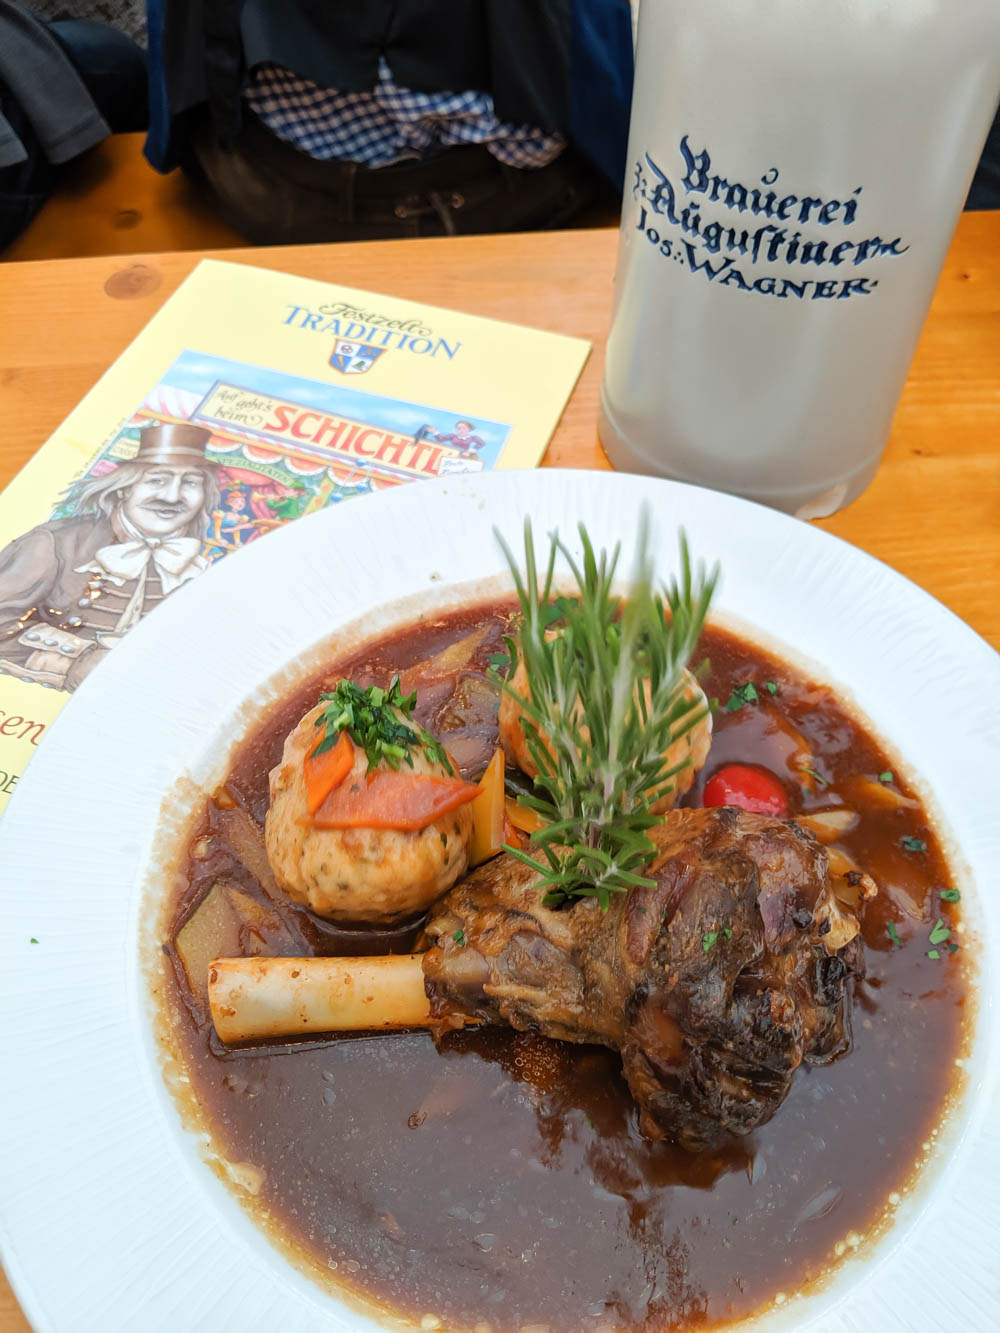 Meal inside Festzelt Tradition   Will Oktoberfest 2021 take place? Is Oktoberfest 2021 going to be canceled? All the info you need to know like what to do, how to plan ahead, official announcements out of Munich, Germany